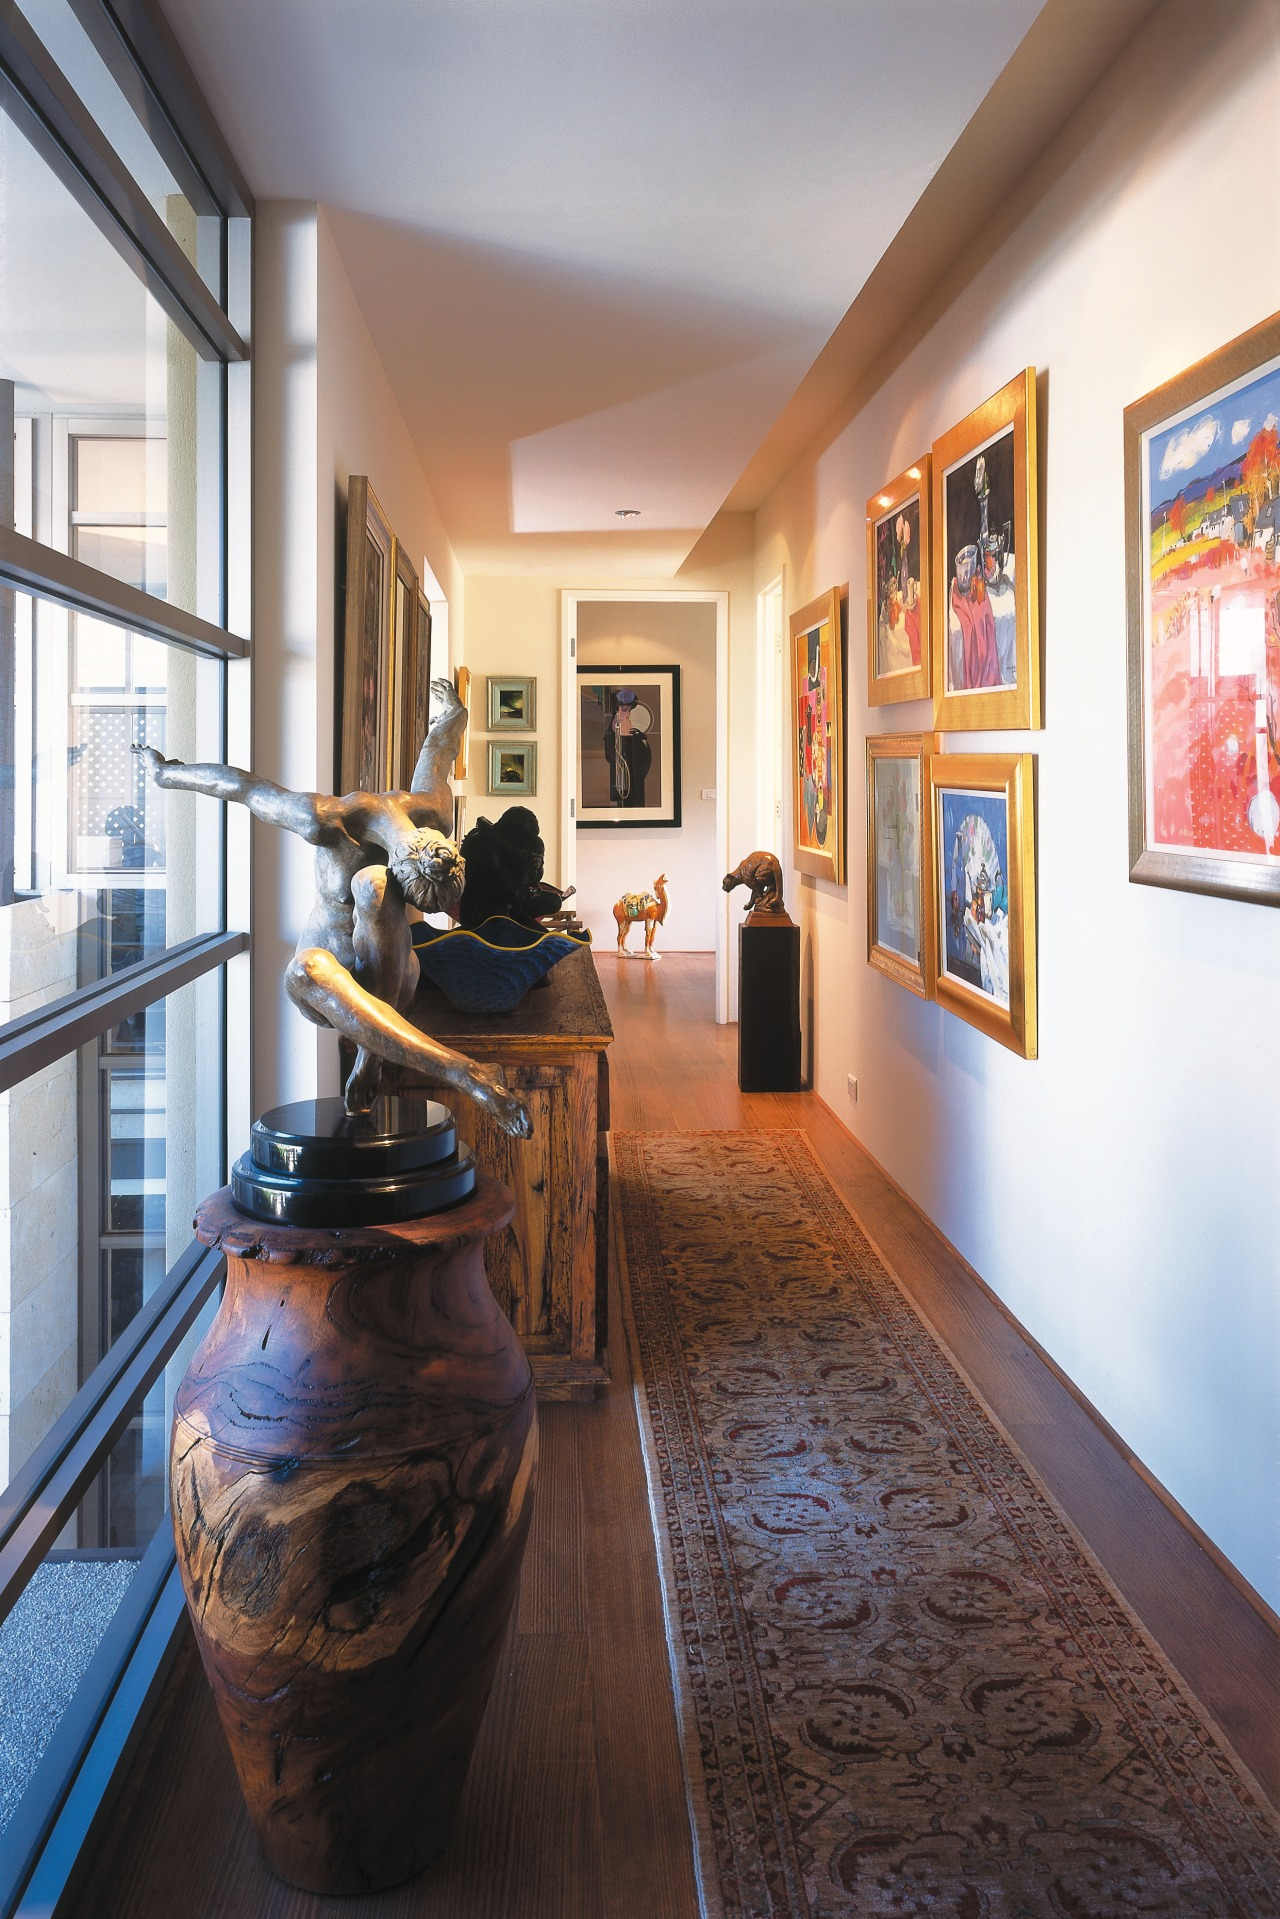 view of the artwork featuring various artworks and floor, flooring, interior design, tourist attraction, white